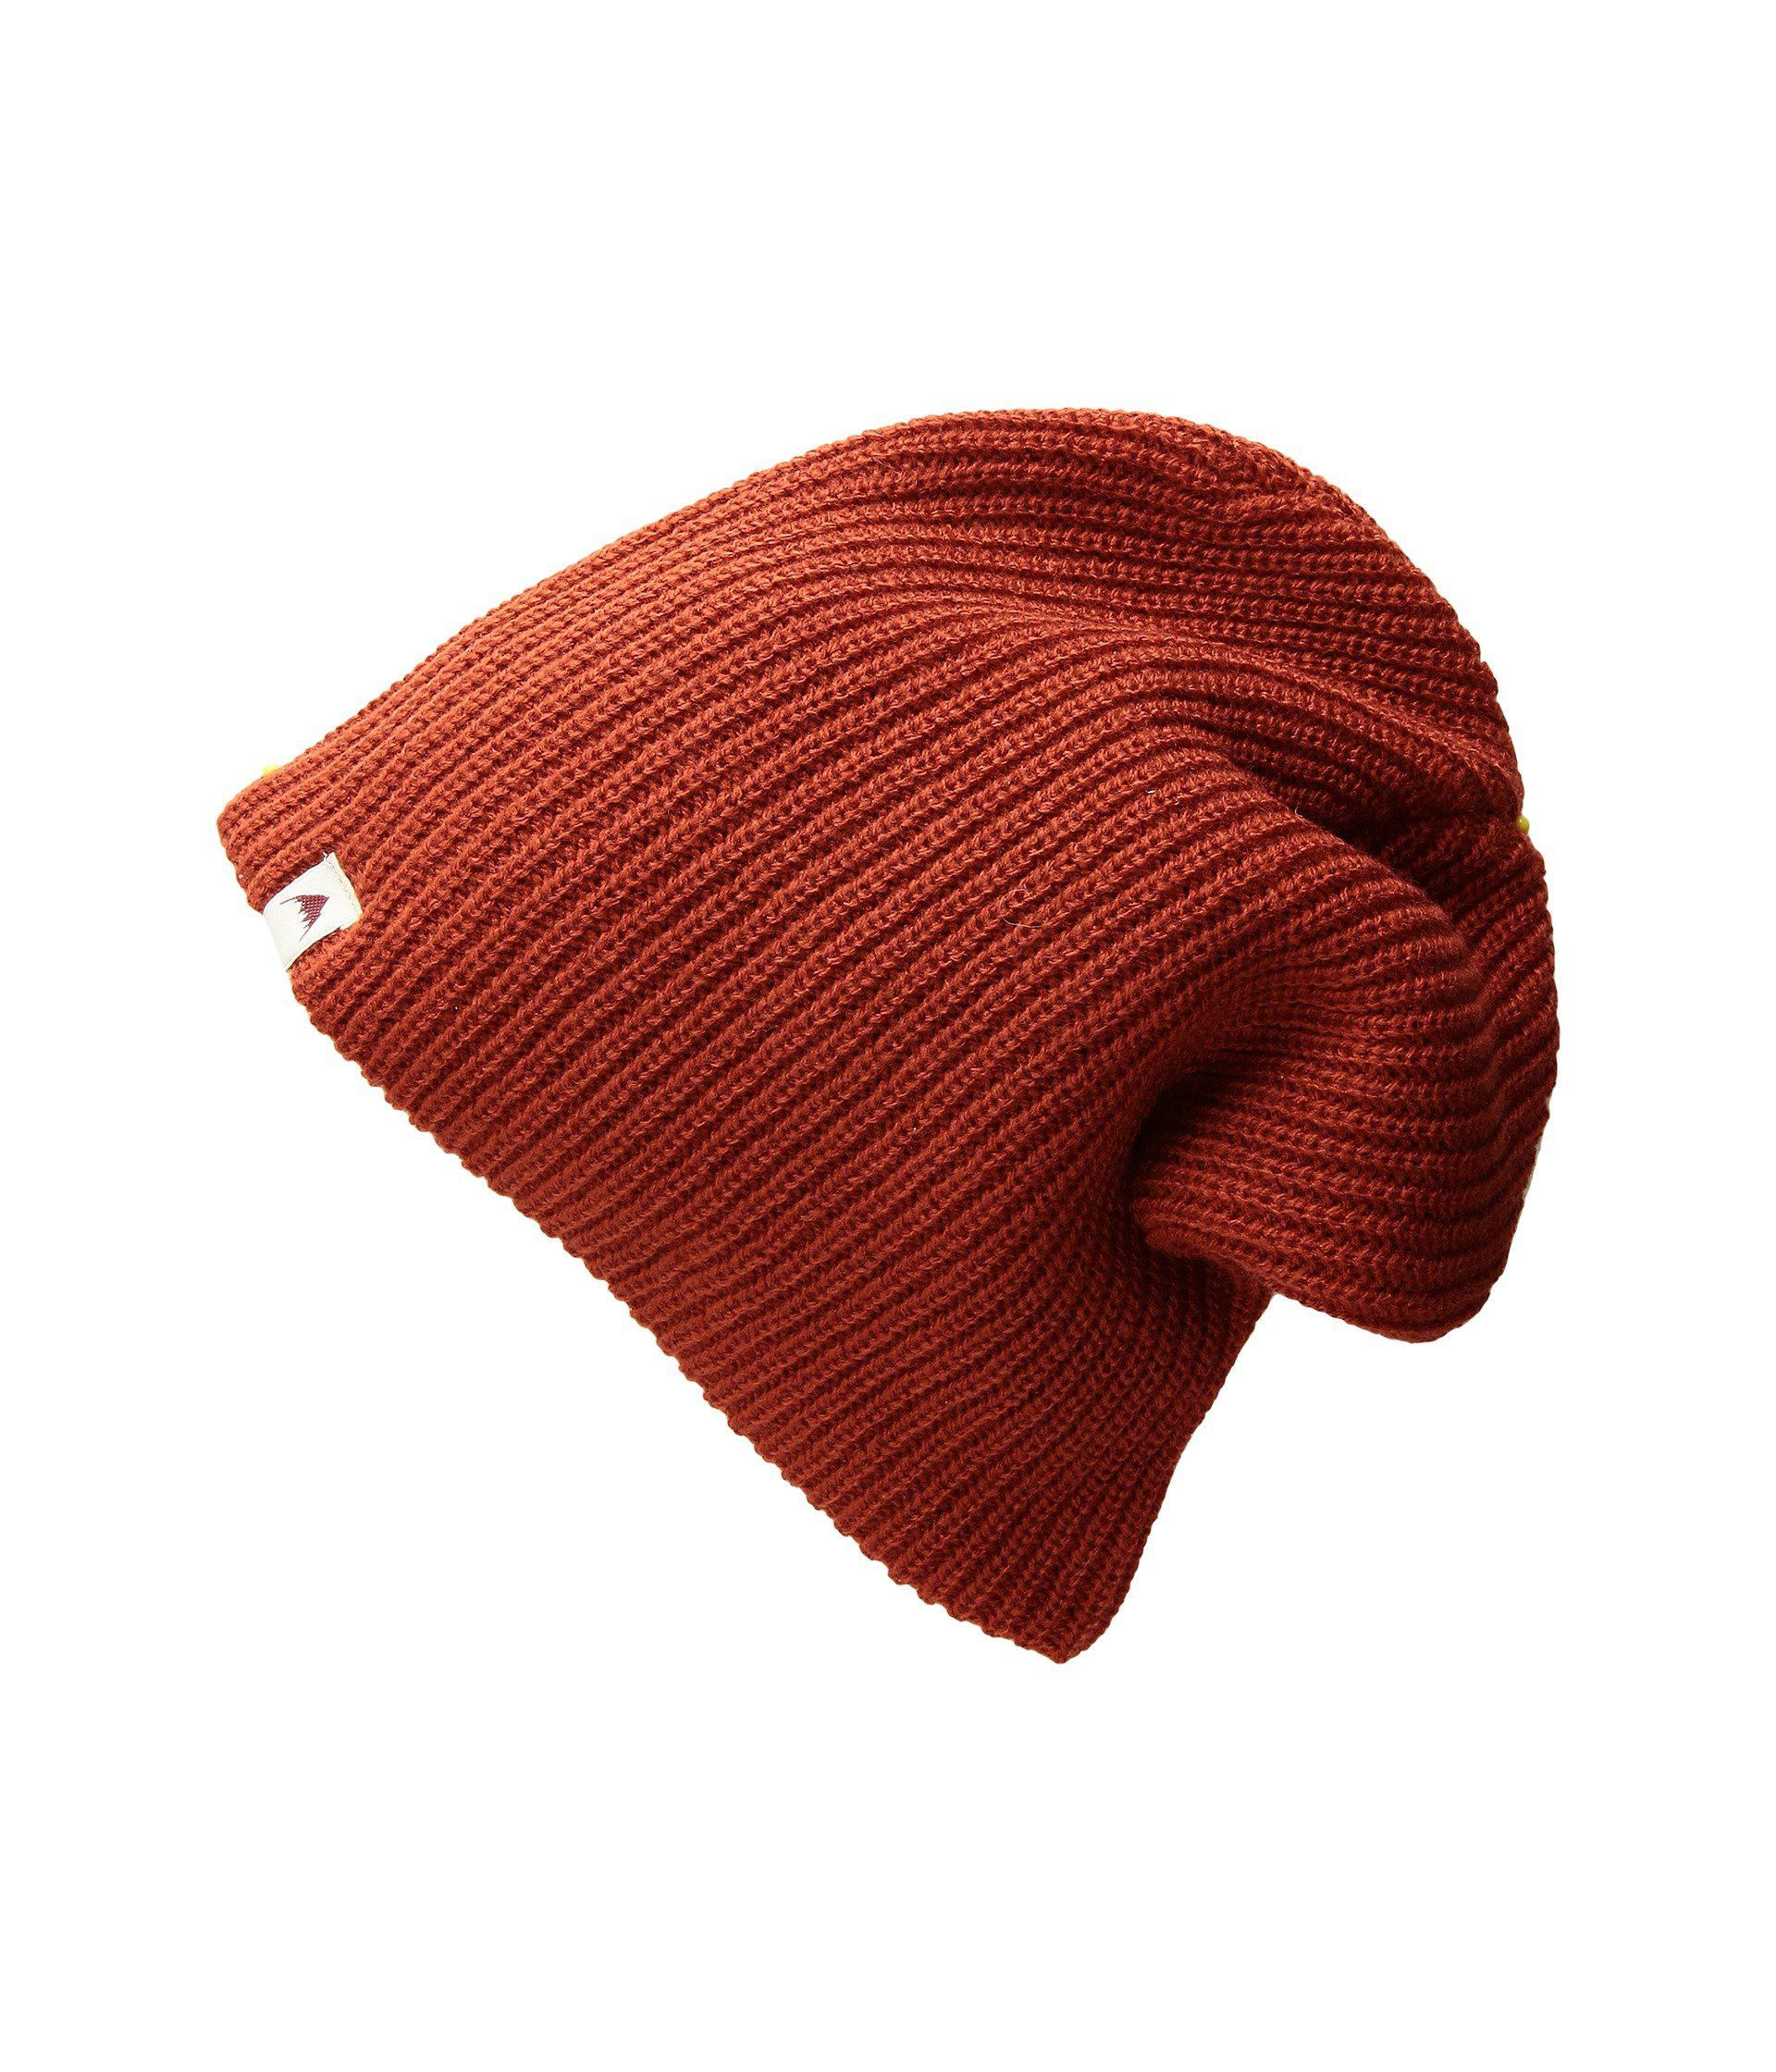 14c05e294cb Lyst - Burton All Day Long Beanie (bitters) Beanies in Red for Men